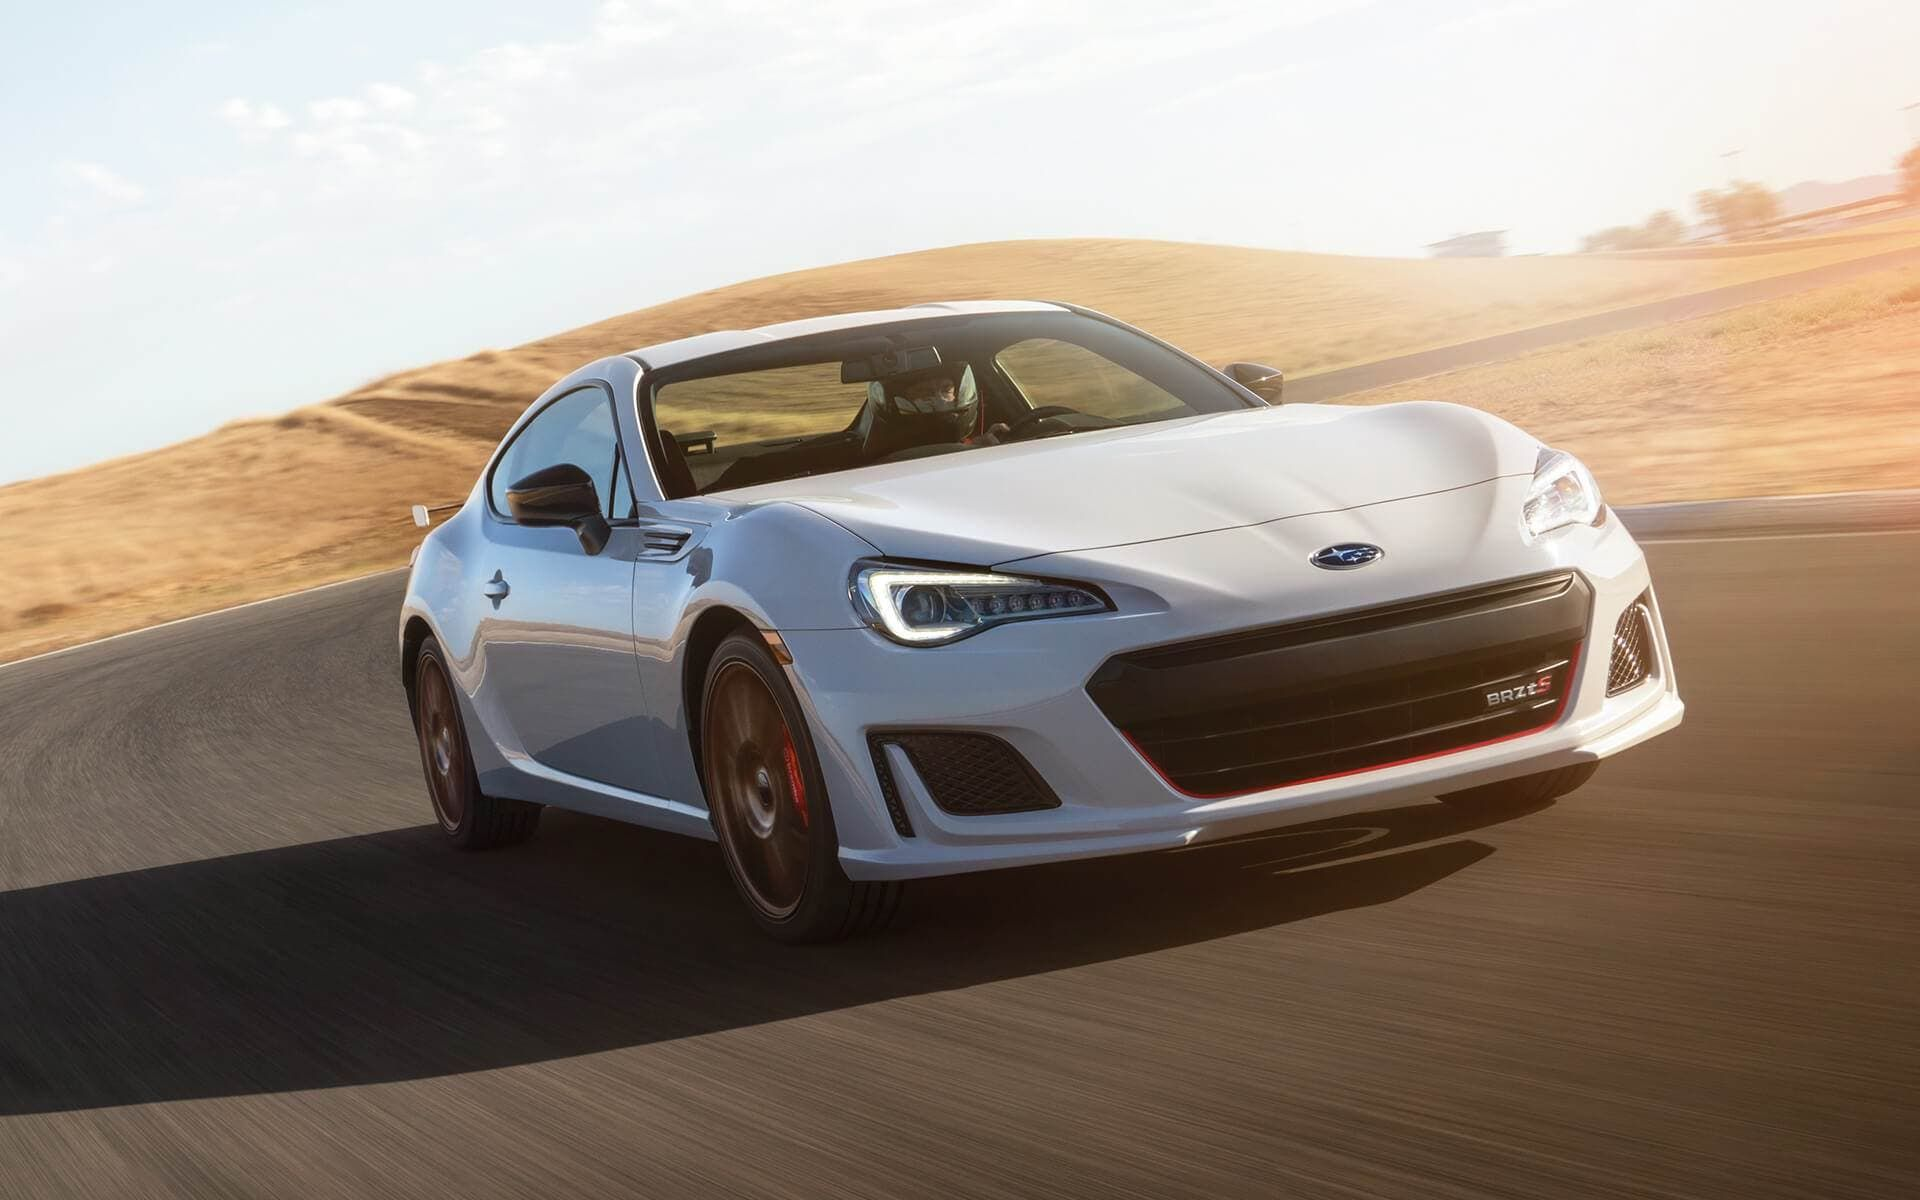 The Subaru BRZ tS has returned for 2020! Subaru